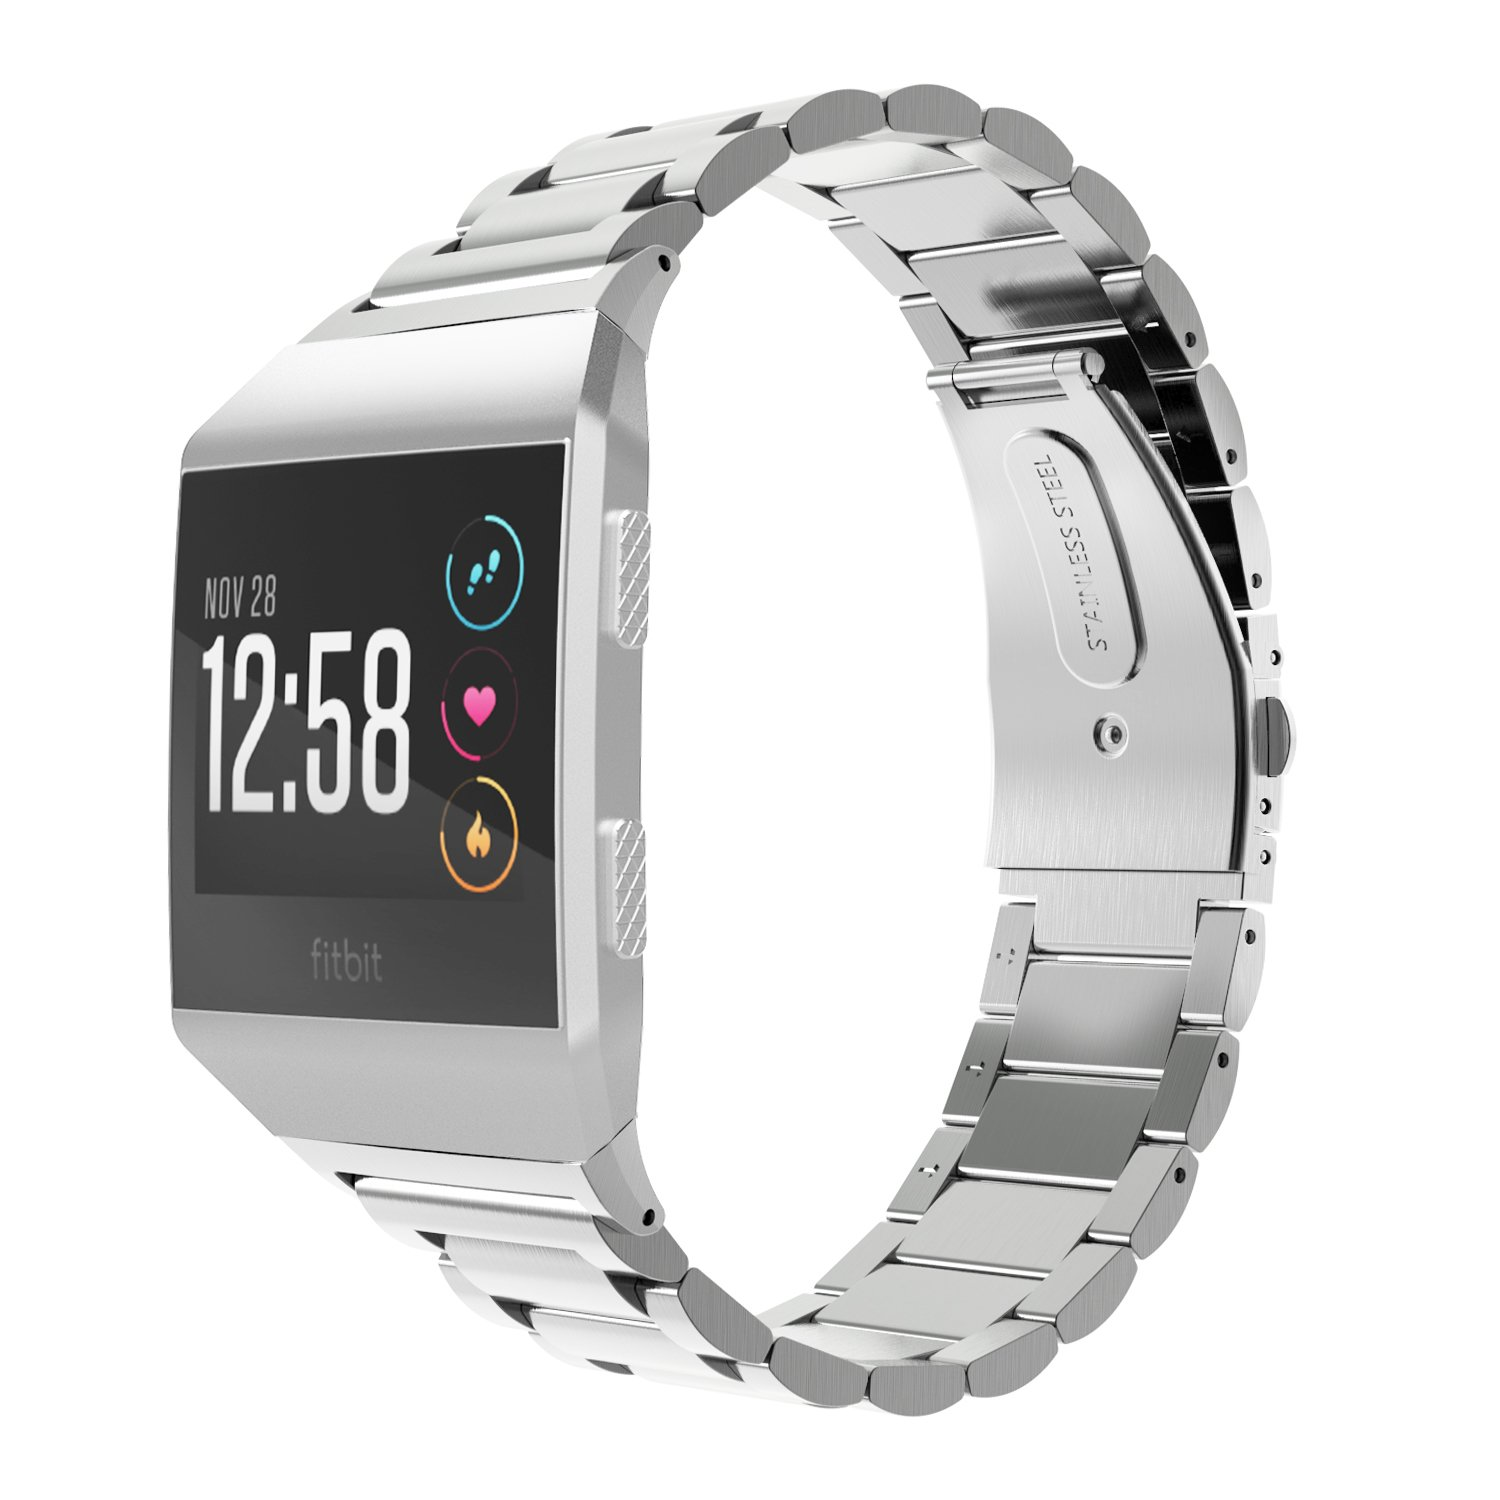 MoKo Fitbit Ionic Watch Band, Premium Solid Stainless Steel Metal Replacement Bracelet Strap Wristband with Connector for Fitbit Ionic Smart Watch, Wrist Length 5.31''-8.07''(135mm-205mm) - Silver